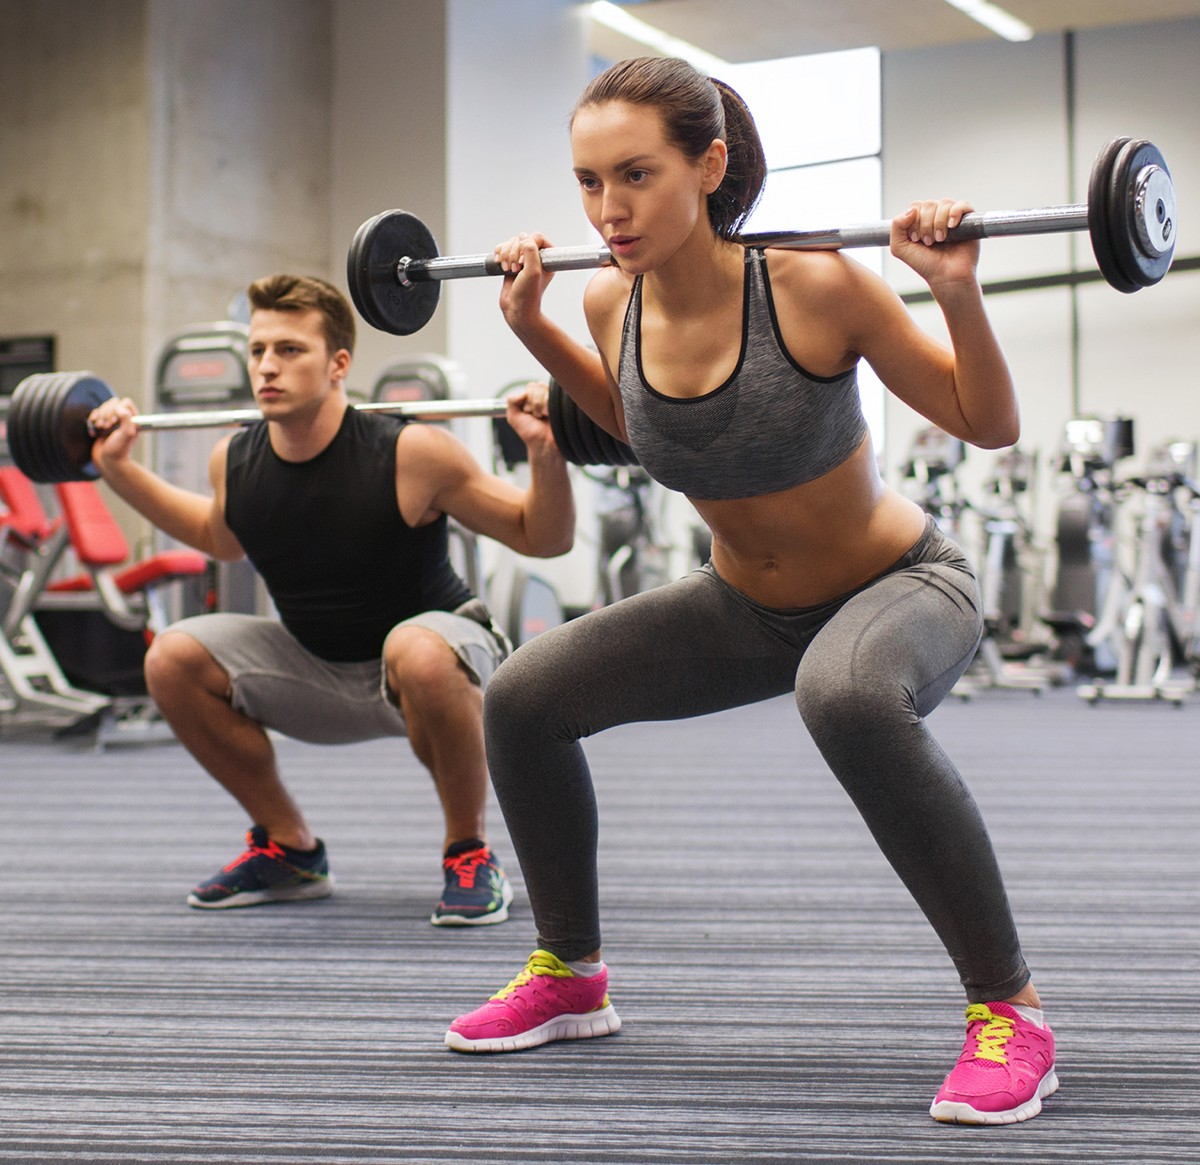 Looking to Start a Strength Training Routine?